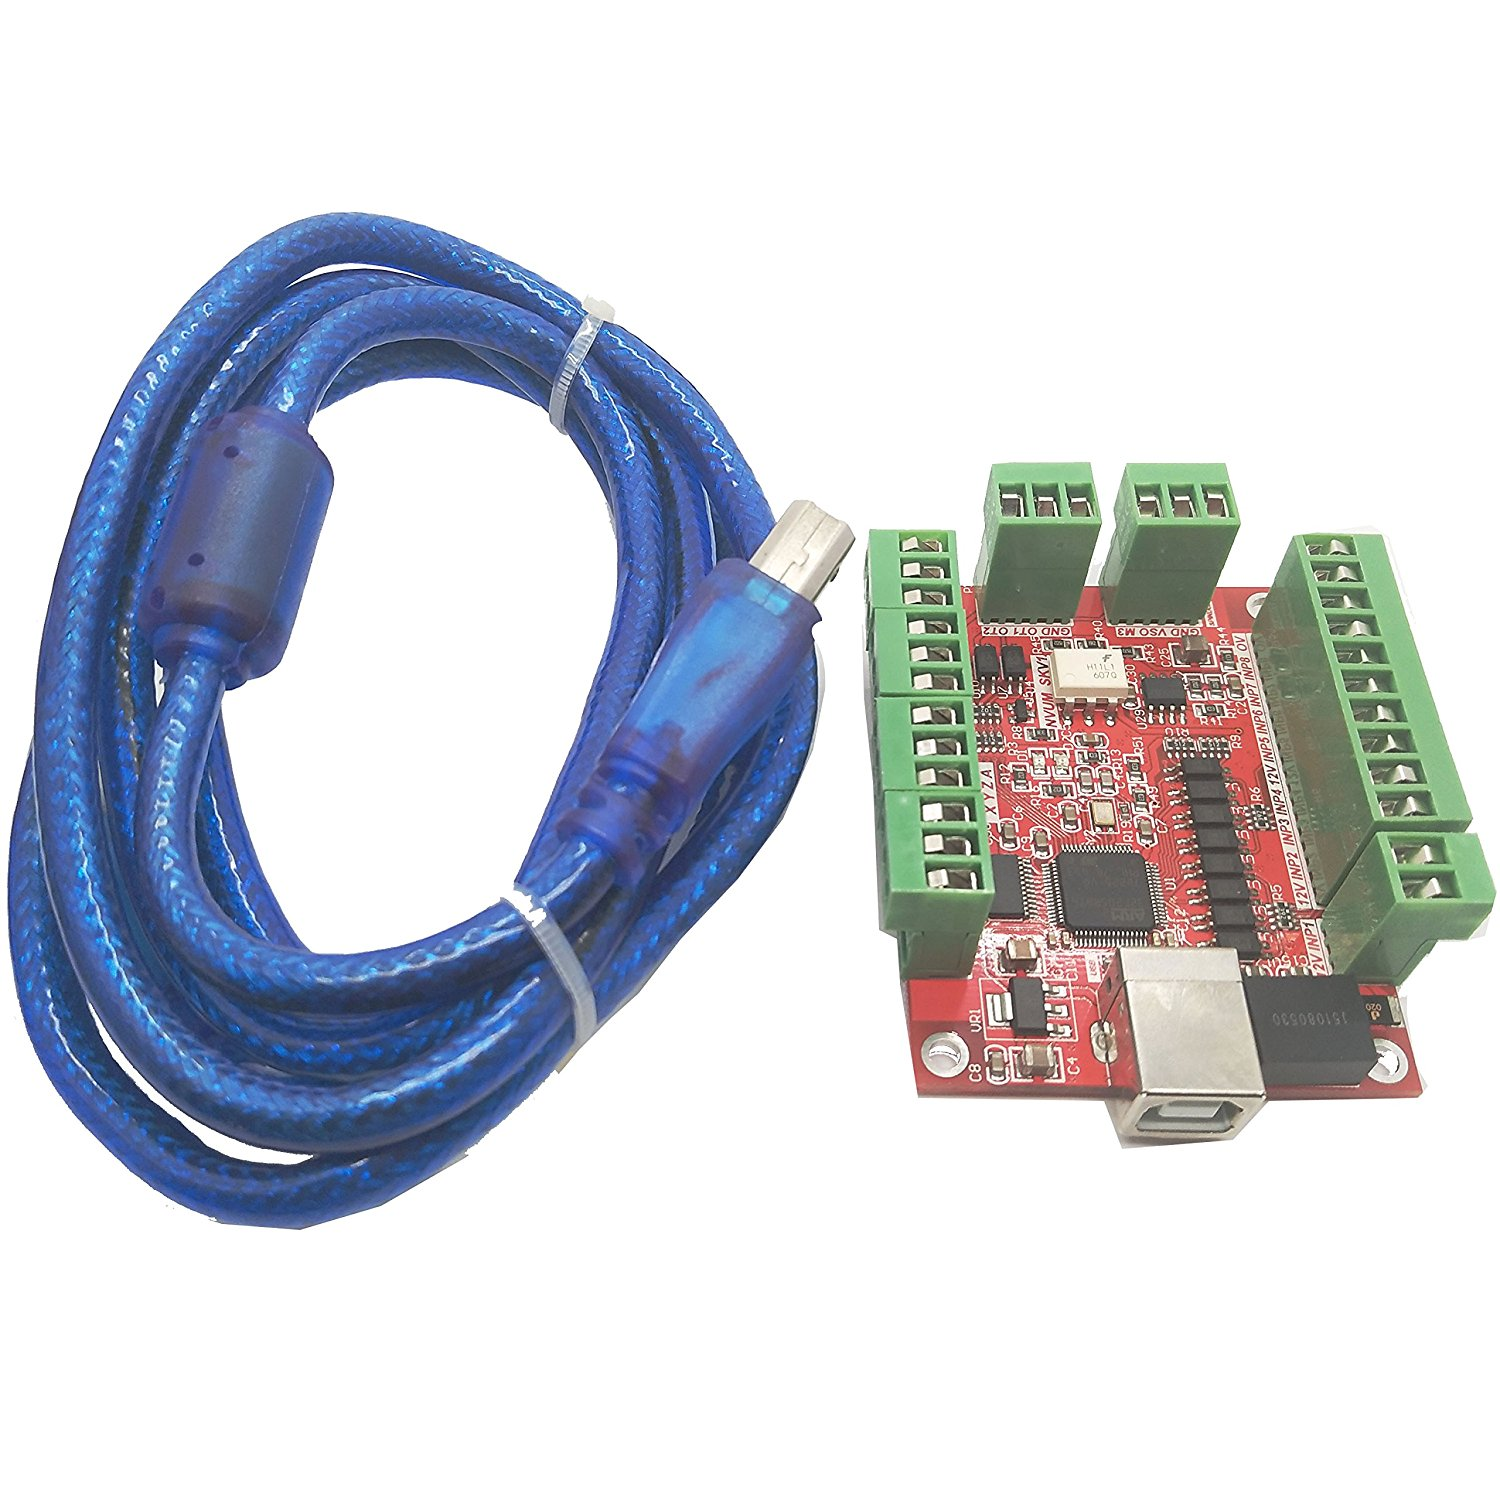 Generic MACH3 USB Interface Board Manual Control Board w/ USB Cable